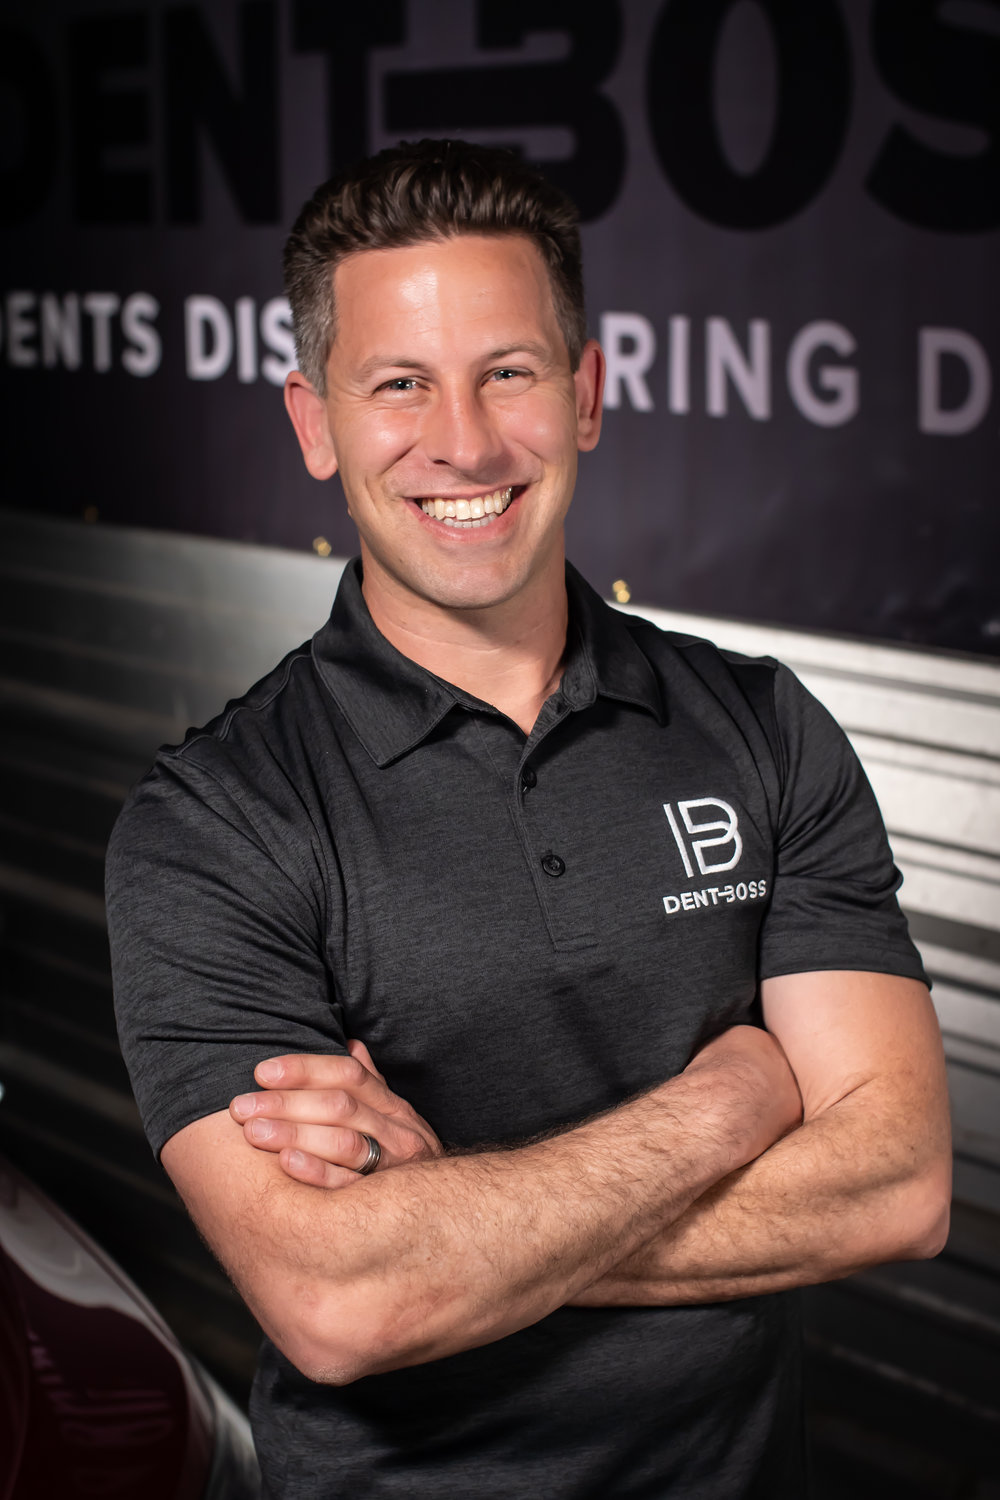 Who is Dent Boss? - Jeff Reeb and his Paintless Dent Repair team have repaired thousands of vehicles across the United States. They successfully restore hail damaged vehicles to their pre-storm condition, retaining the look, and most importantly, the value to vehicles.Working on hail damaged cars from Colorado to Texas, Tennessee to Missouri, Jeff and his team strive for restoration perfection on every dent and every car, each and every time. Making customers their number one priority, they're experts in managing hail claims with auto insurance companies. As a customer, you're assured maximum payout for a complete repair job, ensuring that all damaged is properly accounted for.